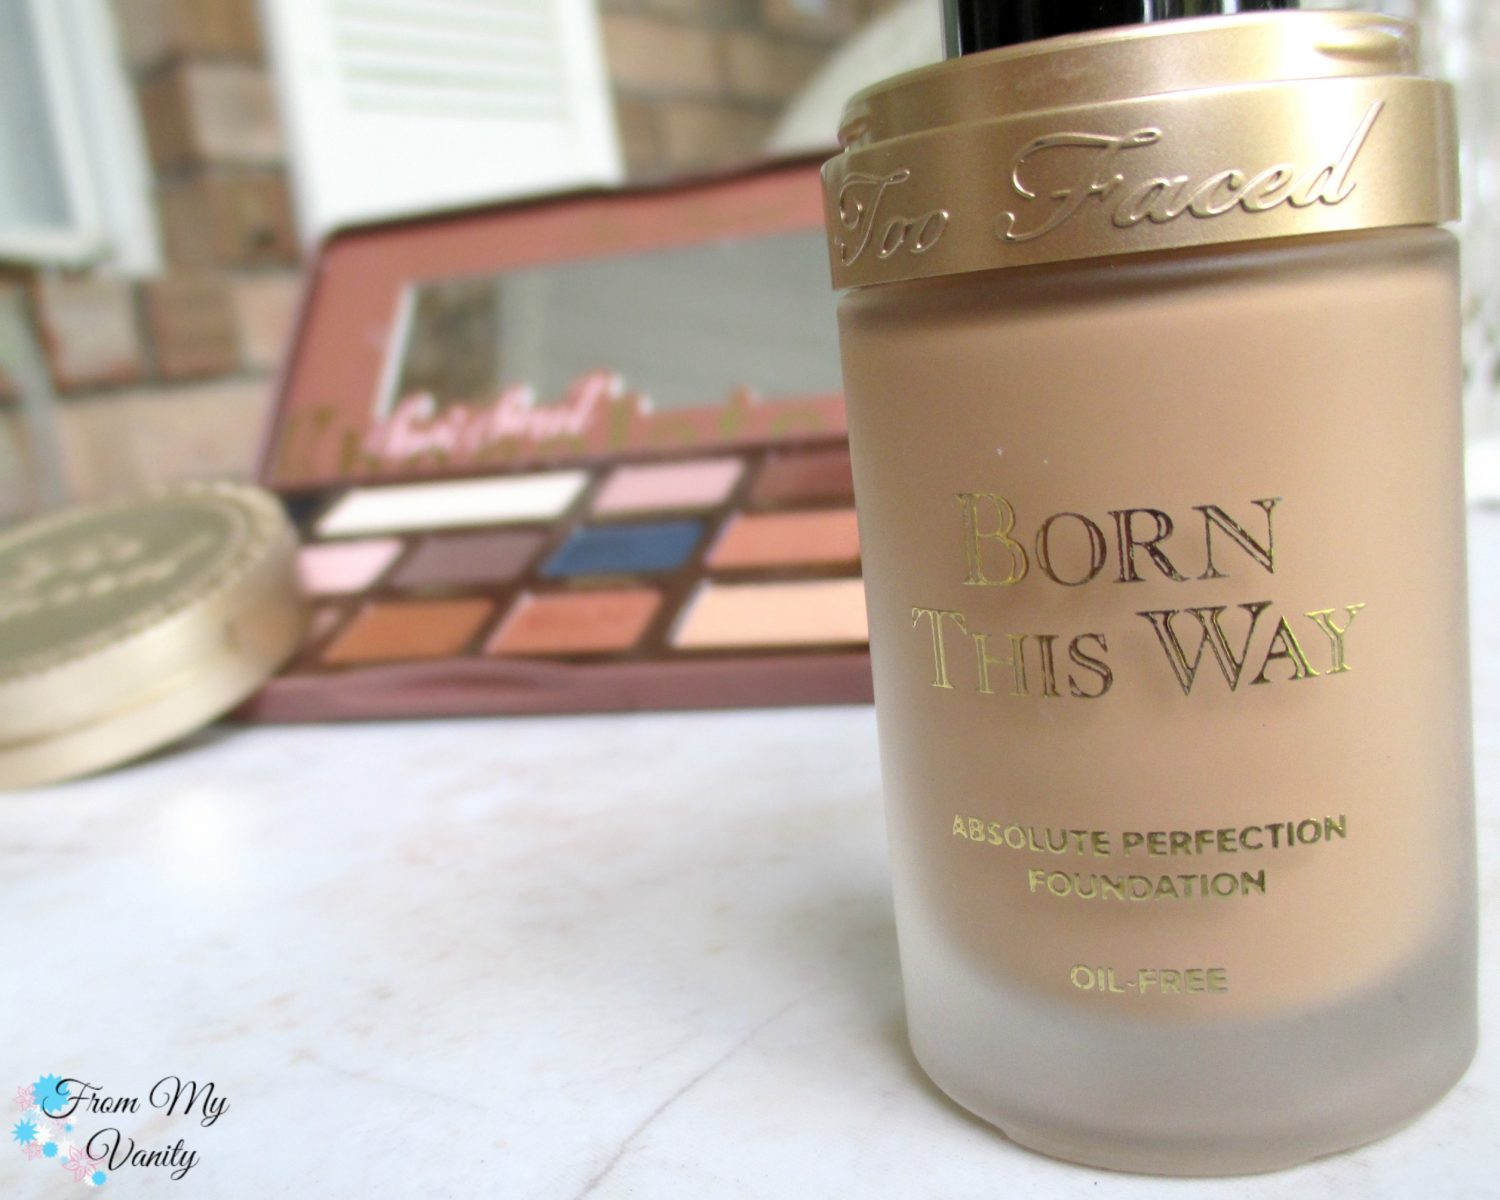 Too Faced Born This Way Foundation // Review // FromMyVanity.com